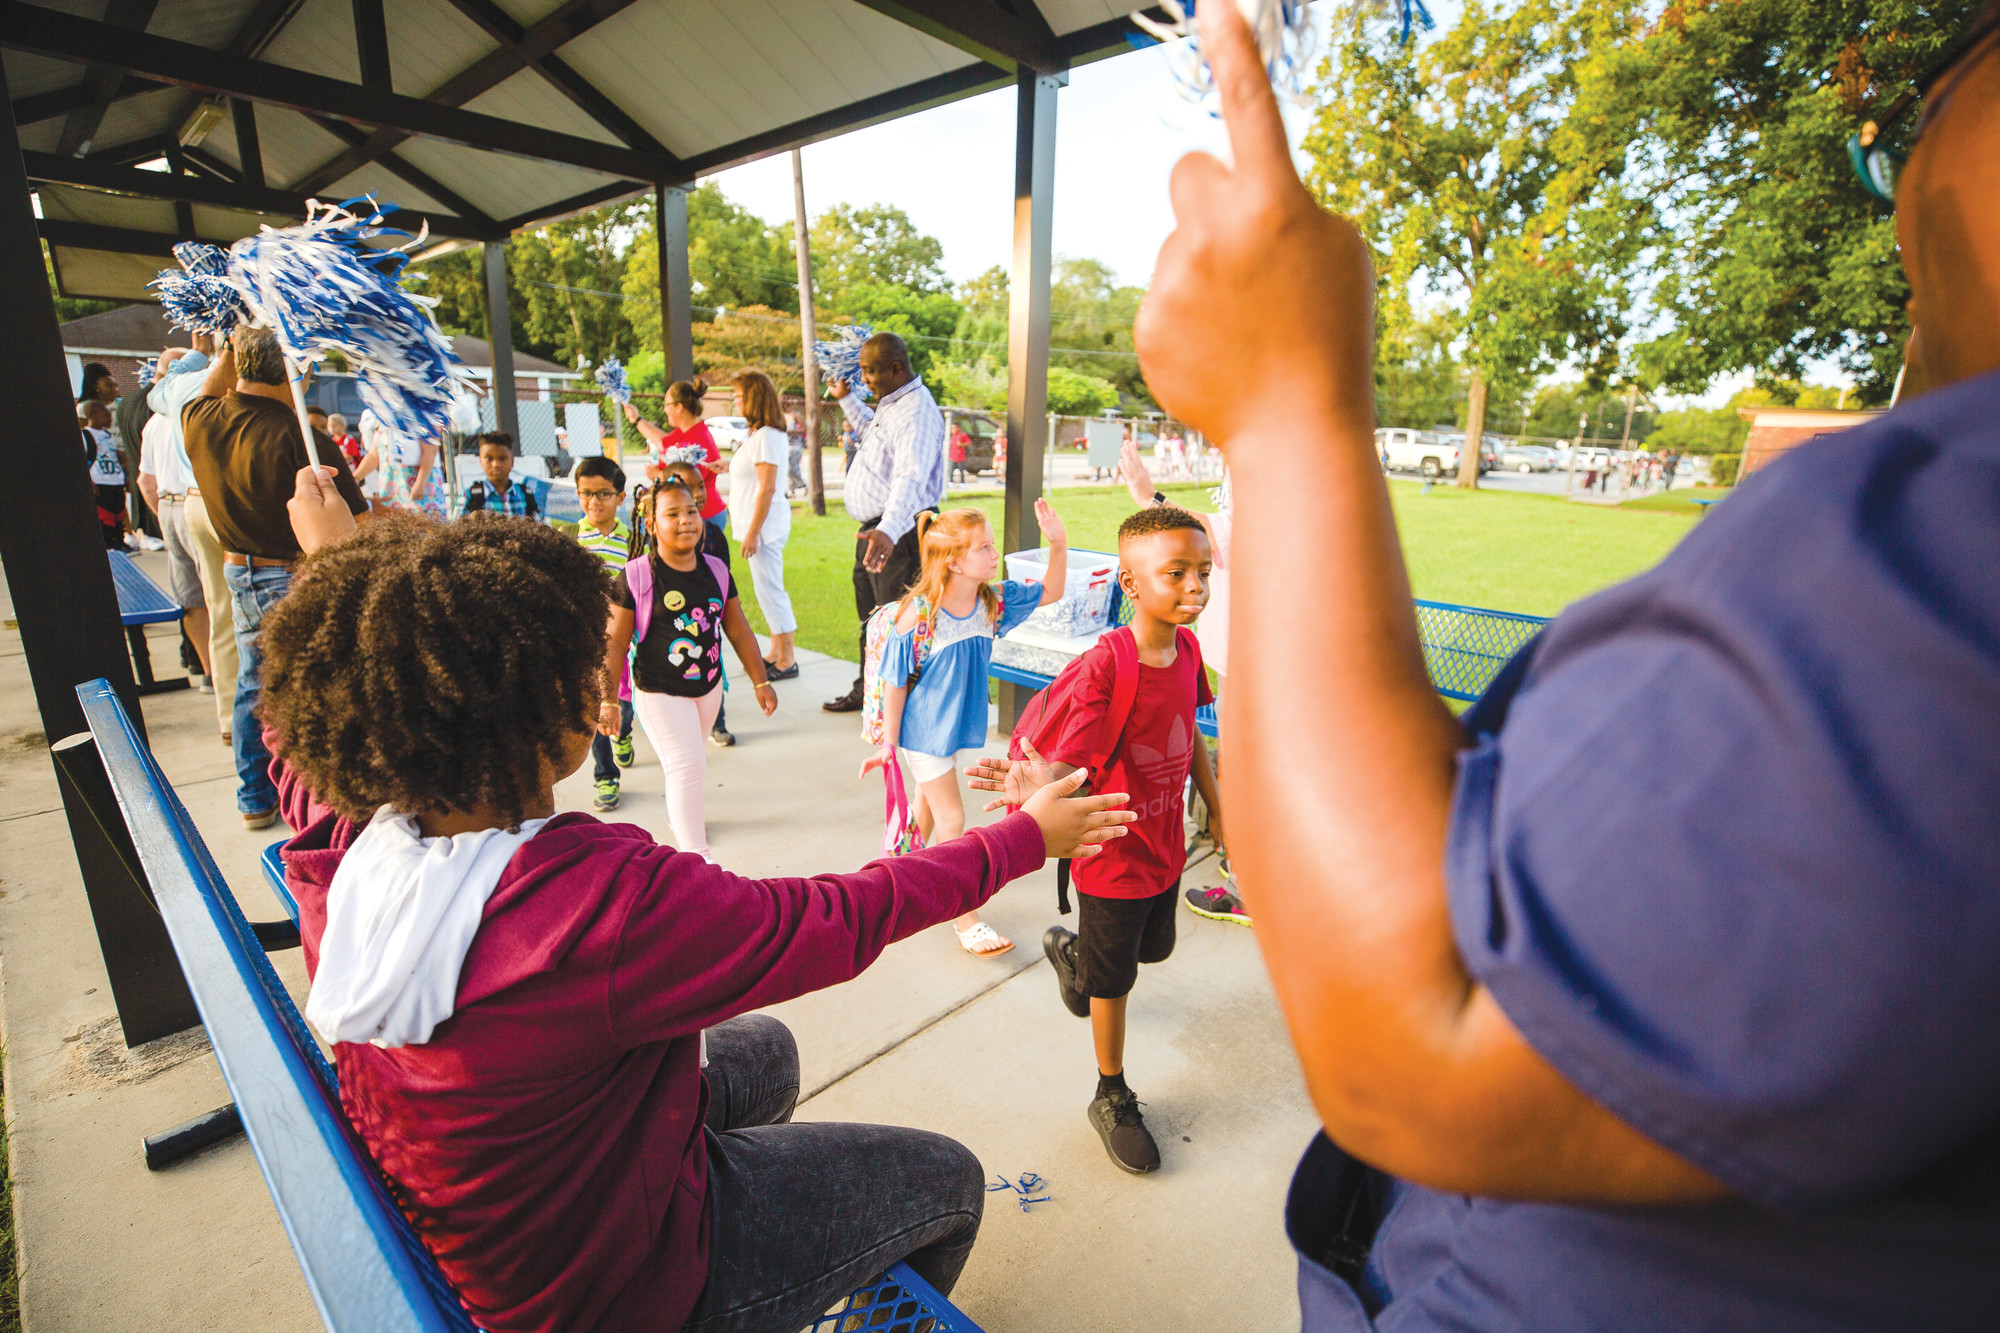 Students at Willow Drive Elementary School are cheered on as they walk into the school for their first day on Monday.